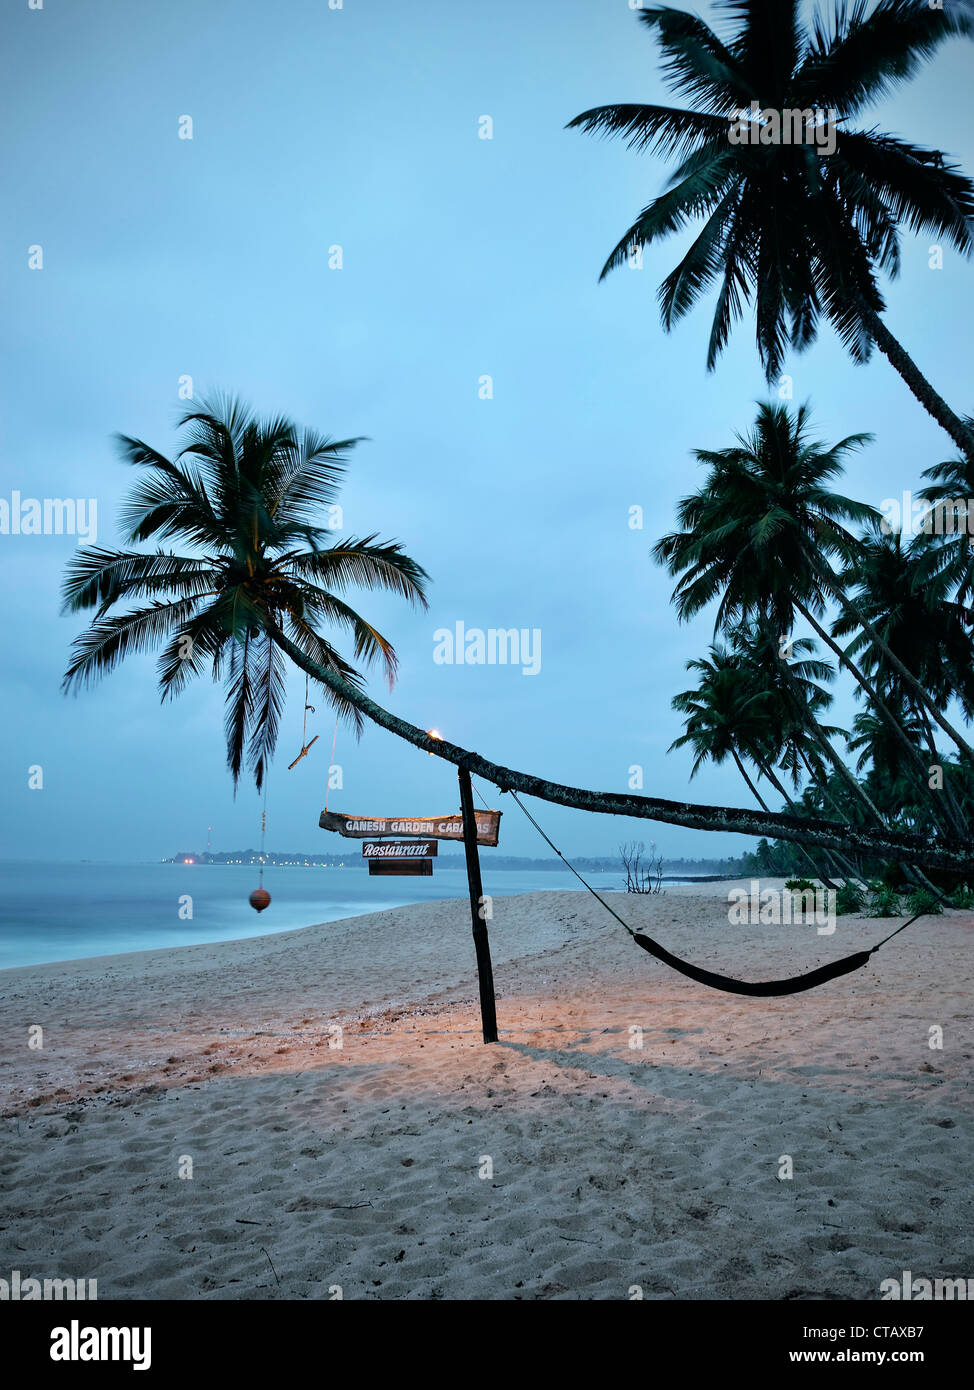 Crooked palm tree with hammock at Tangalle beach at dawn, Sri Lanka, Indian Ocean - Stock Image